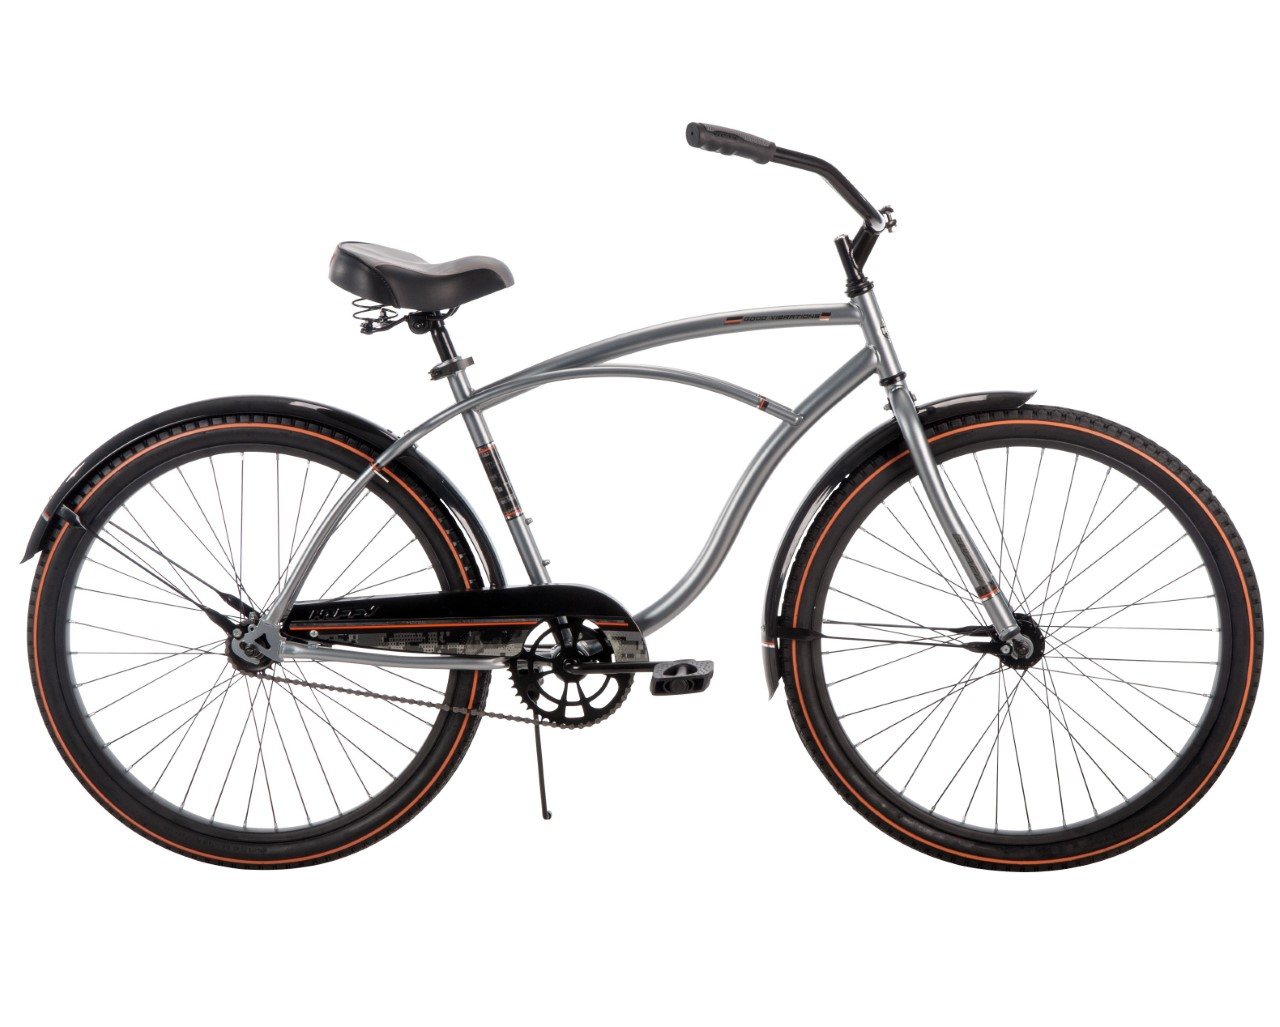 26 IN MENS GOOD VIBRATIONS CRUISER BIKE PartNumber: 00607792000P KsnValue: 8676736 MfgPartNumber: 26627